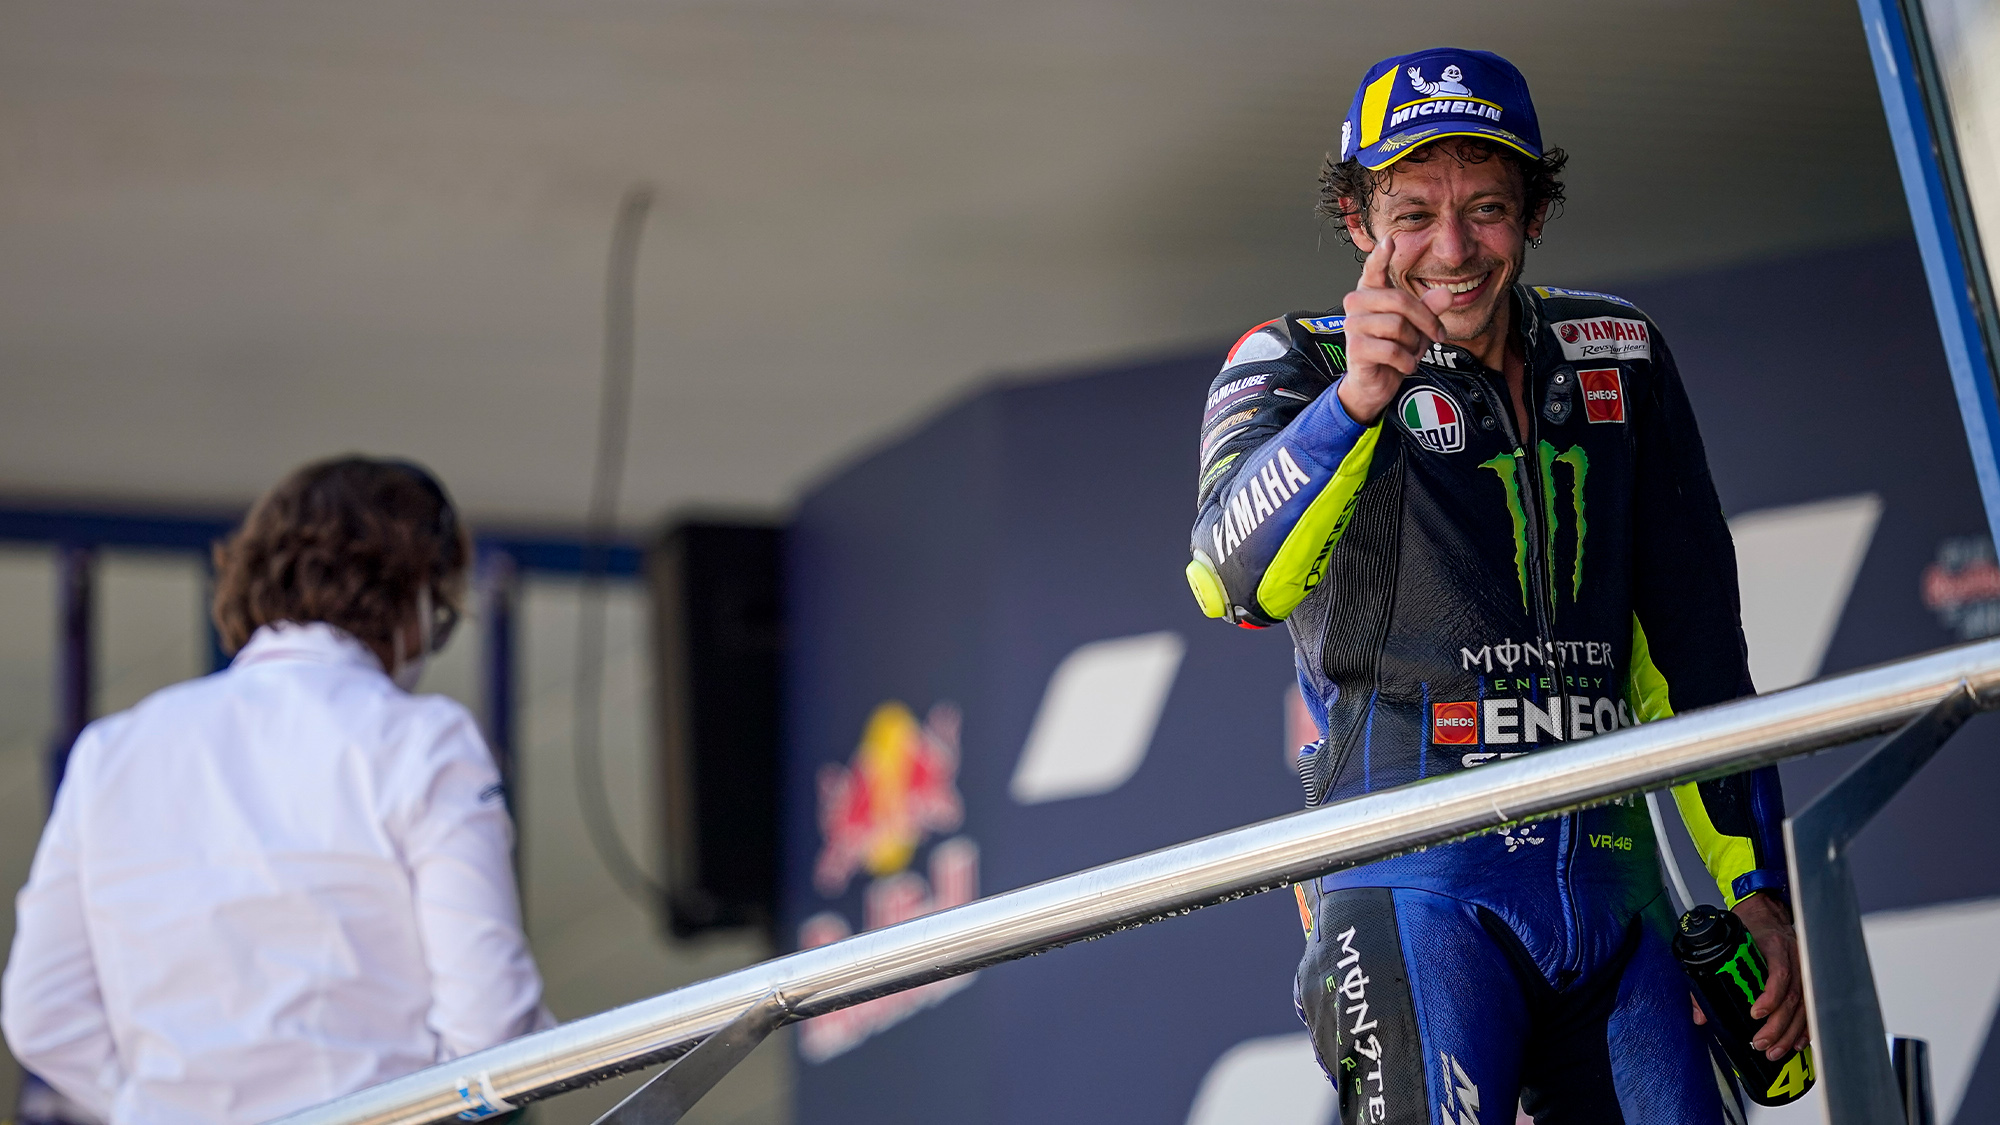 Valentino Rossi on the podium after the 2020 MotoGP Andalucia Grand Prix